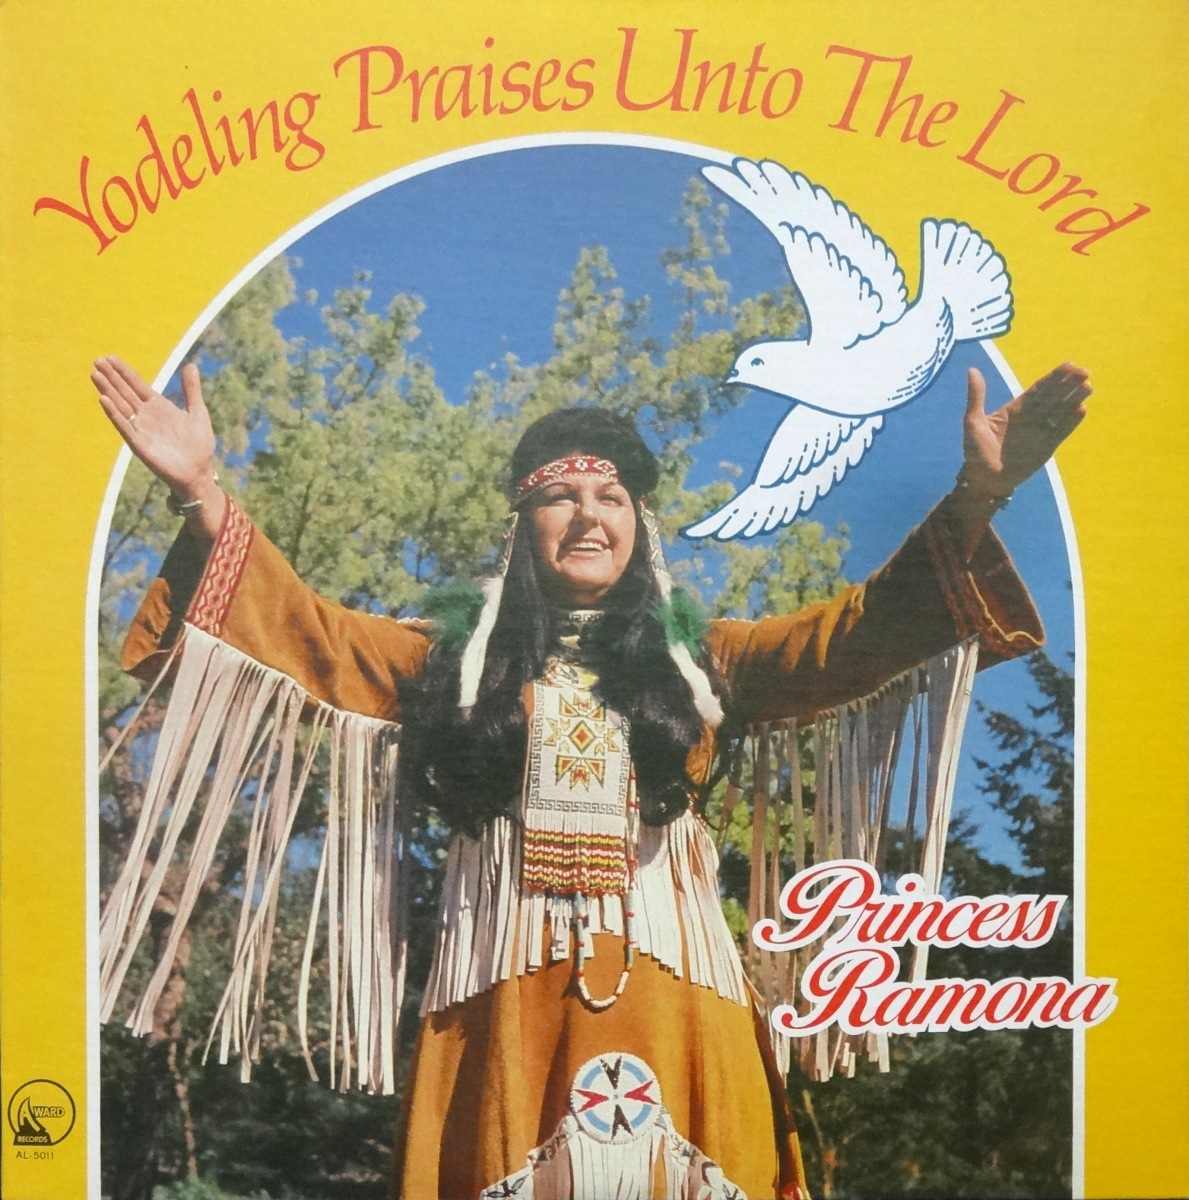 From The Stacks: Princess Ramona, 'Yodeling Praises Unto the Lord'